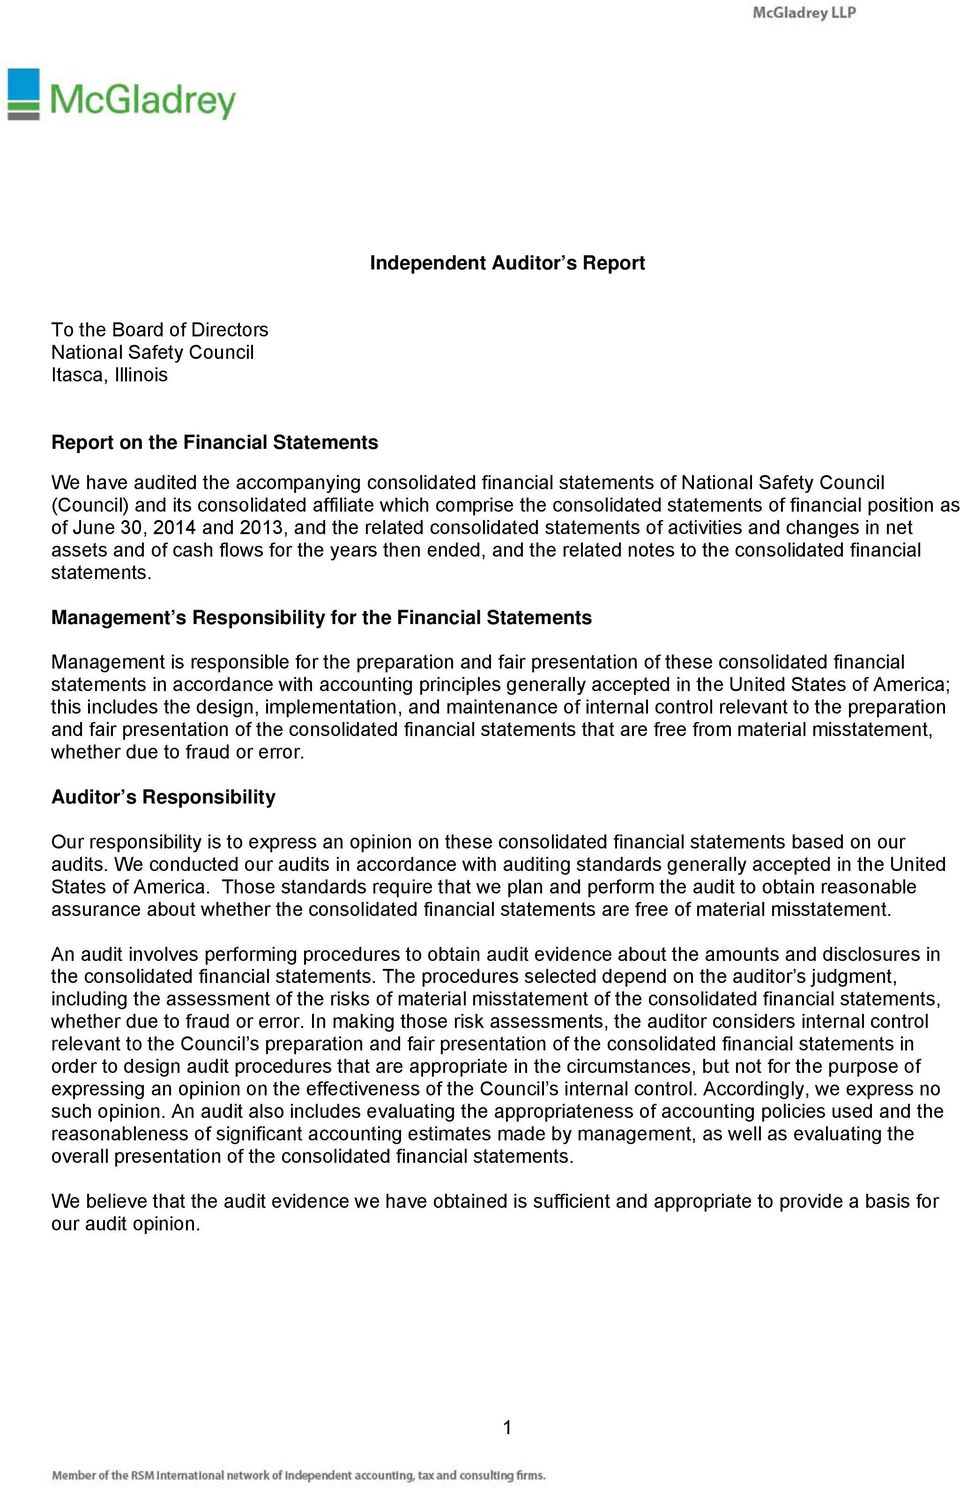 statements of National Safety Council (Council) and its consolidated affiliate which comprise the consolidated statements of financial position as of June 30, 2014 and 2013, and the related